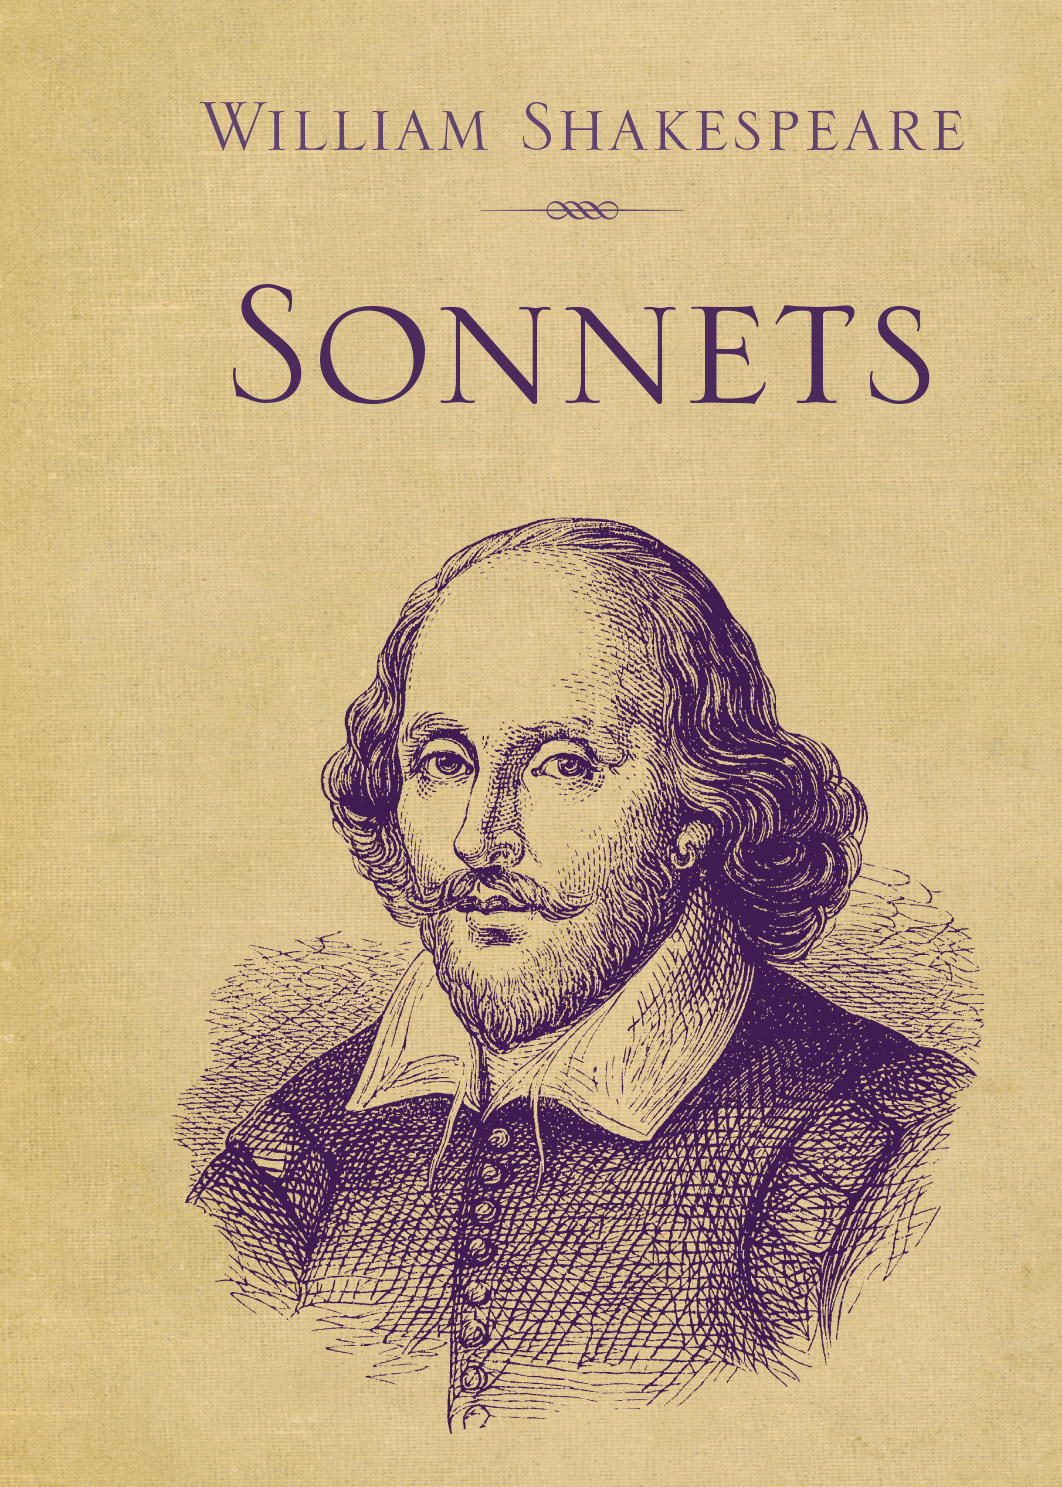 William Shakespeare – Sonnets